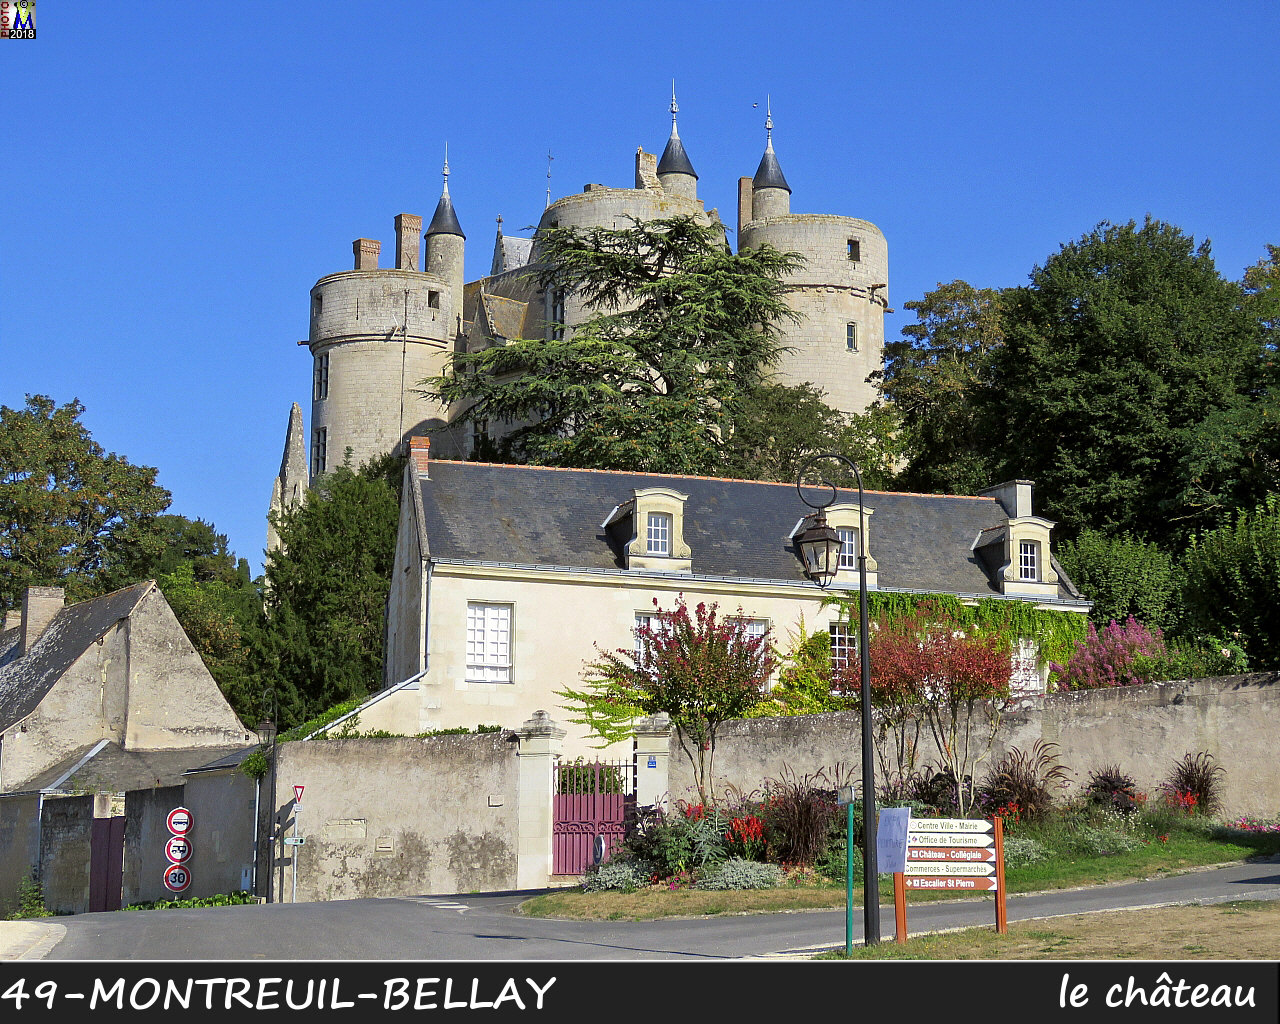 49MONTREUIL-BELLAY_chateau_1050.jpg